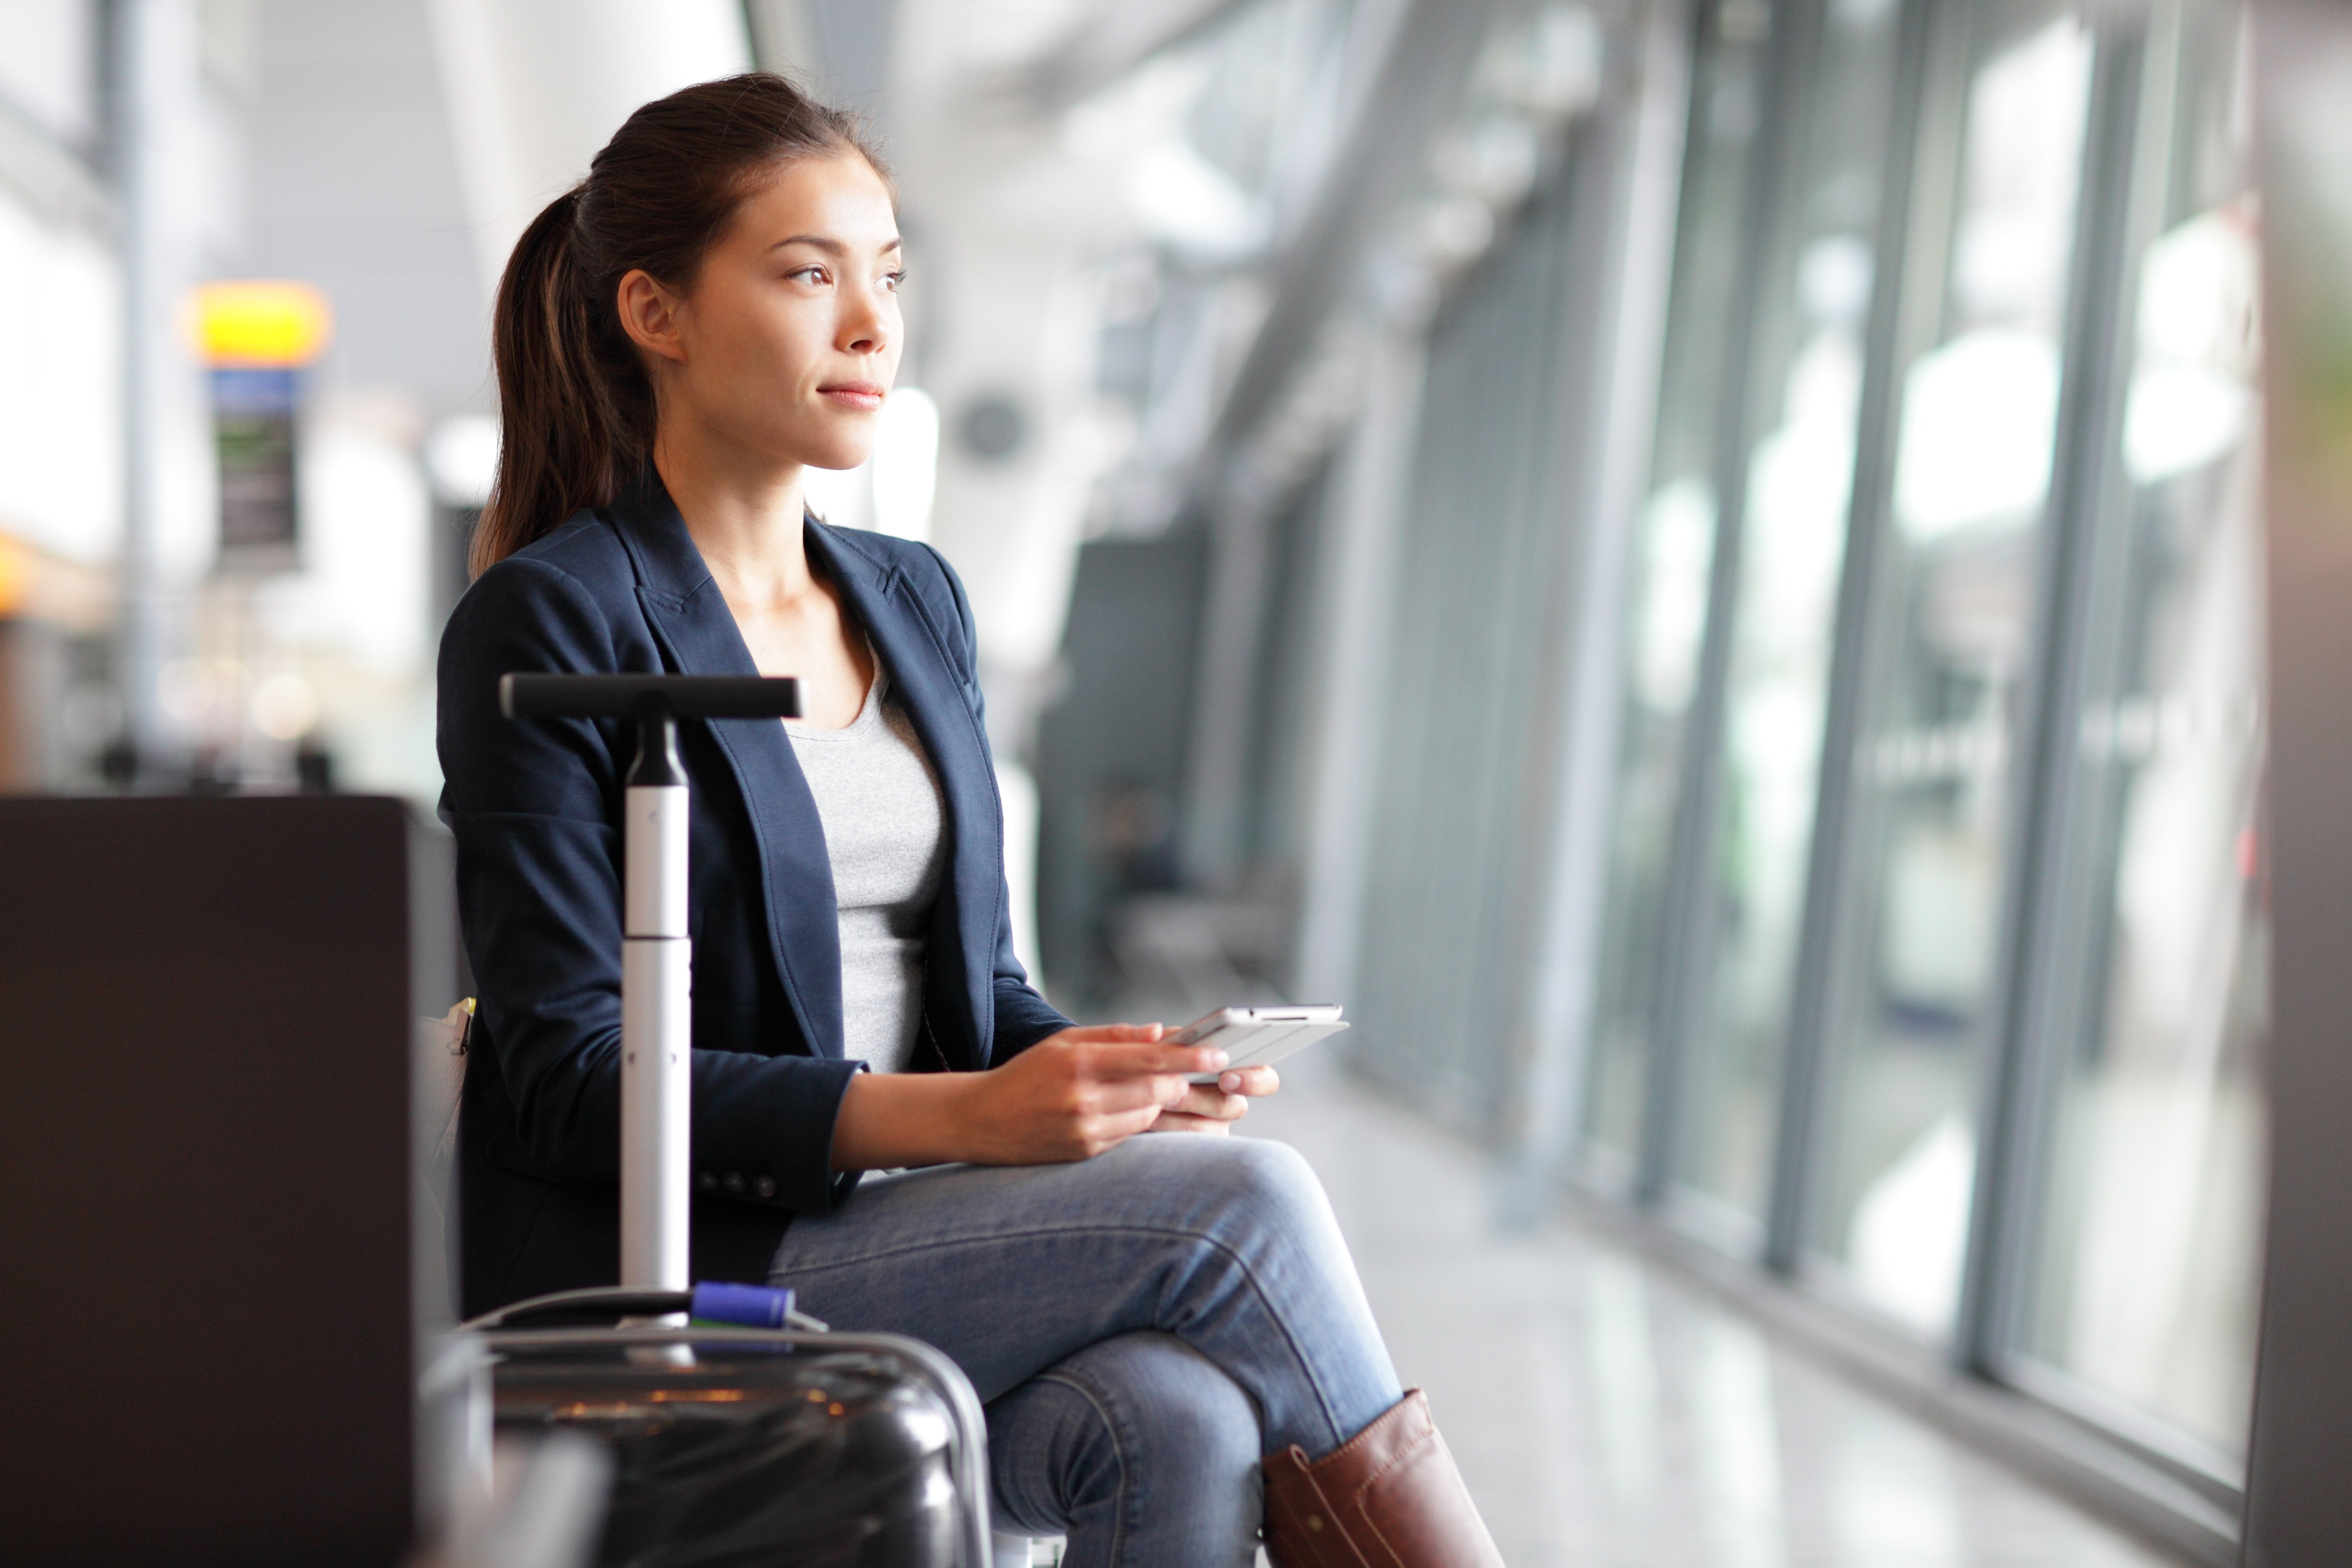 Woman in airport traveling with jewelry